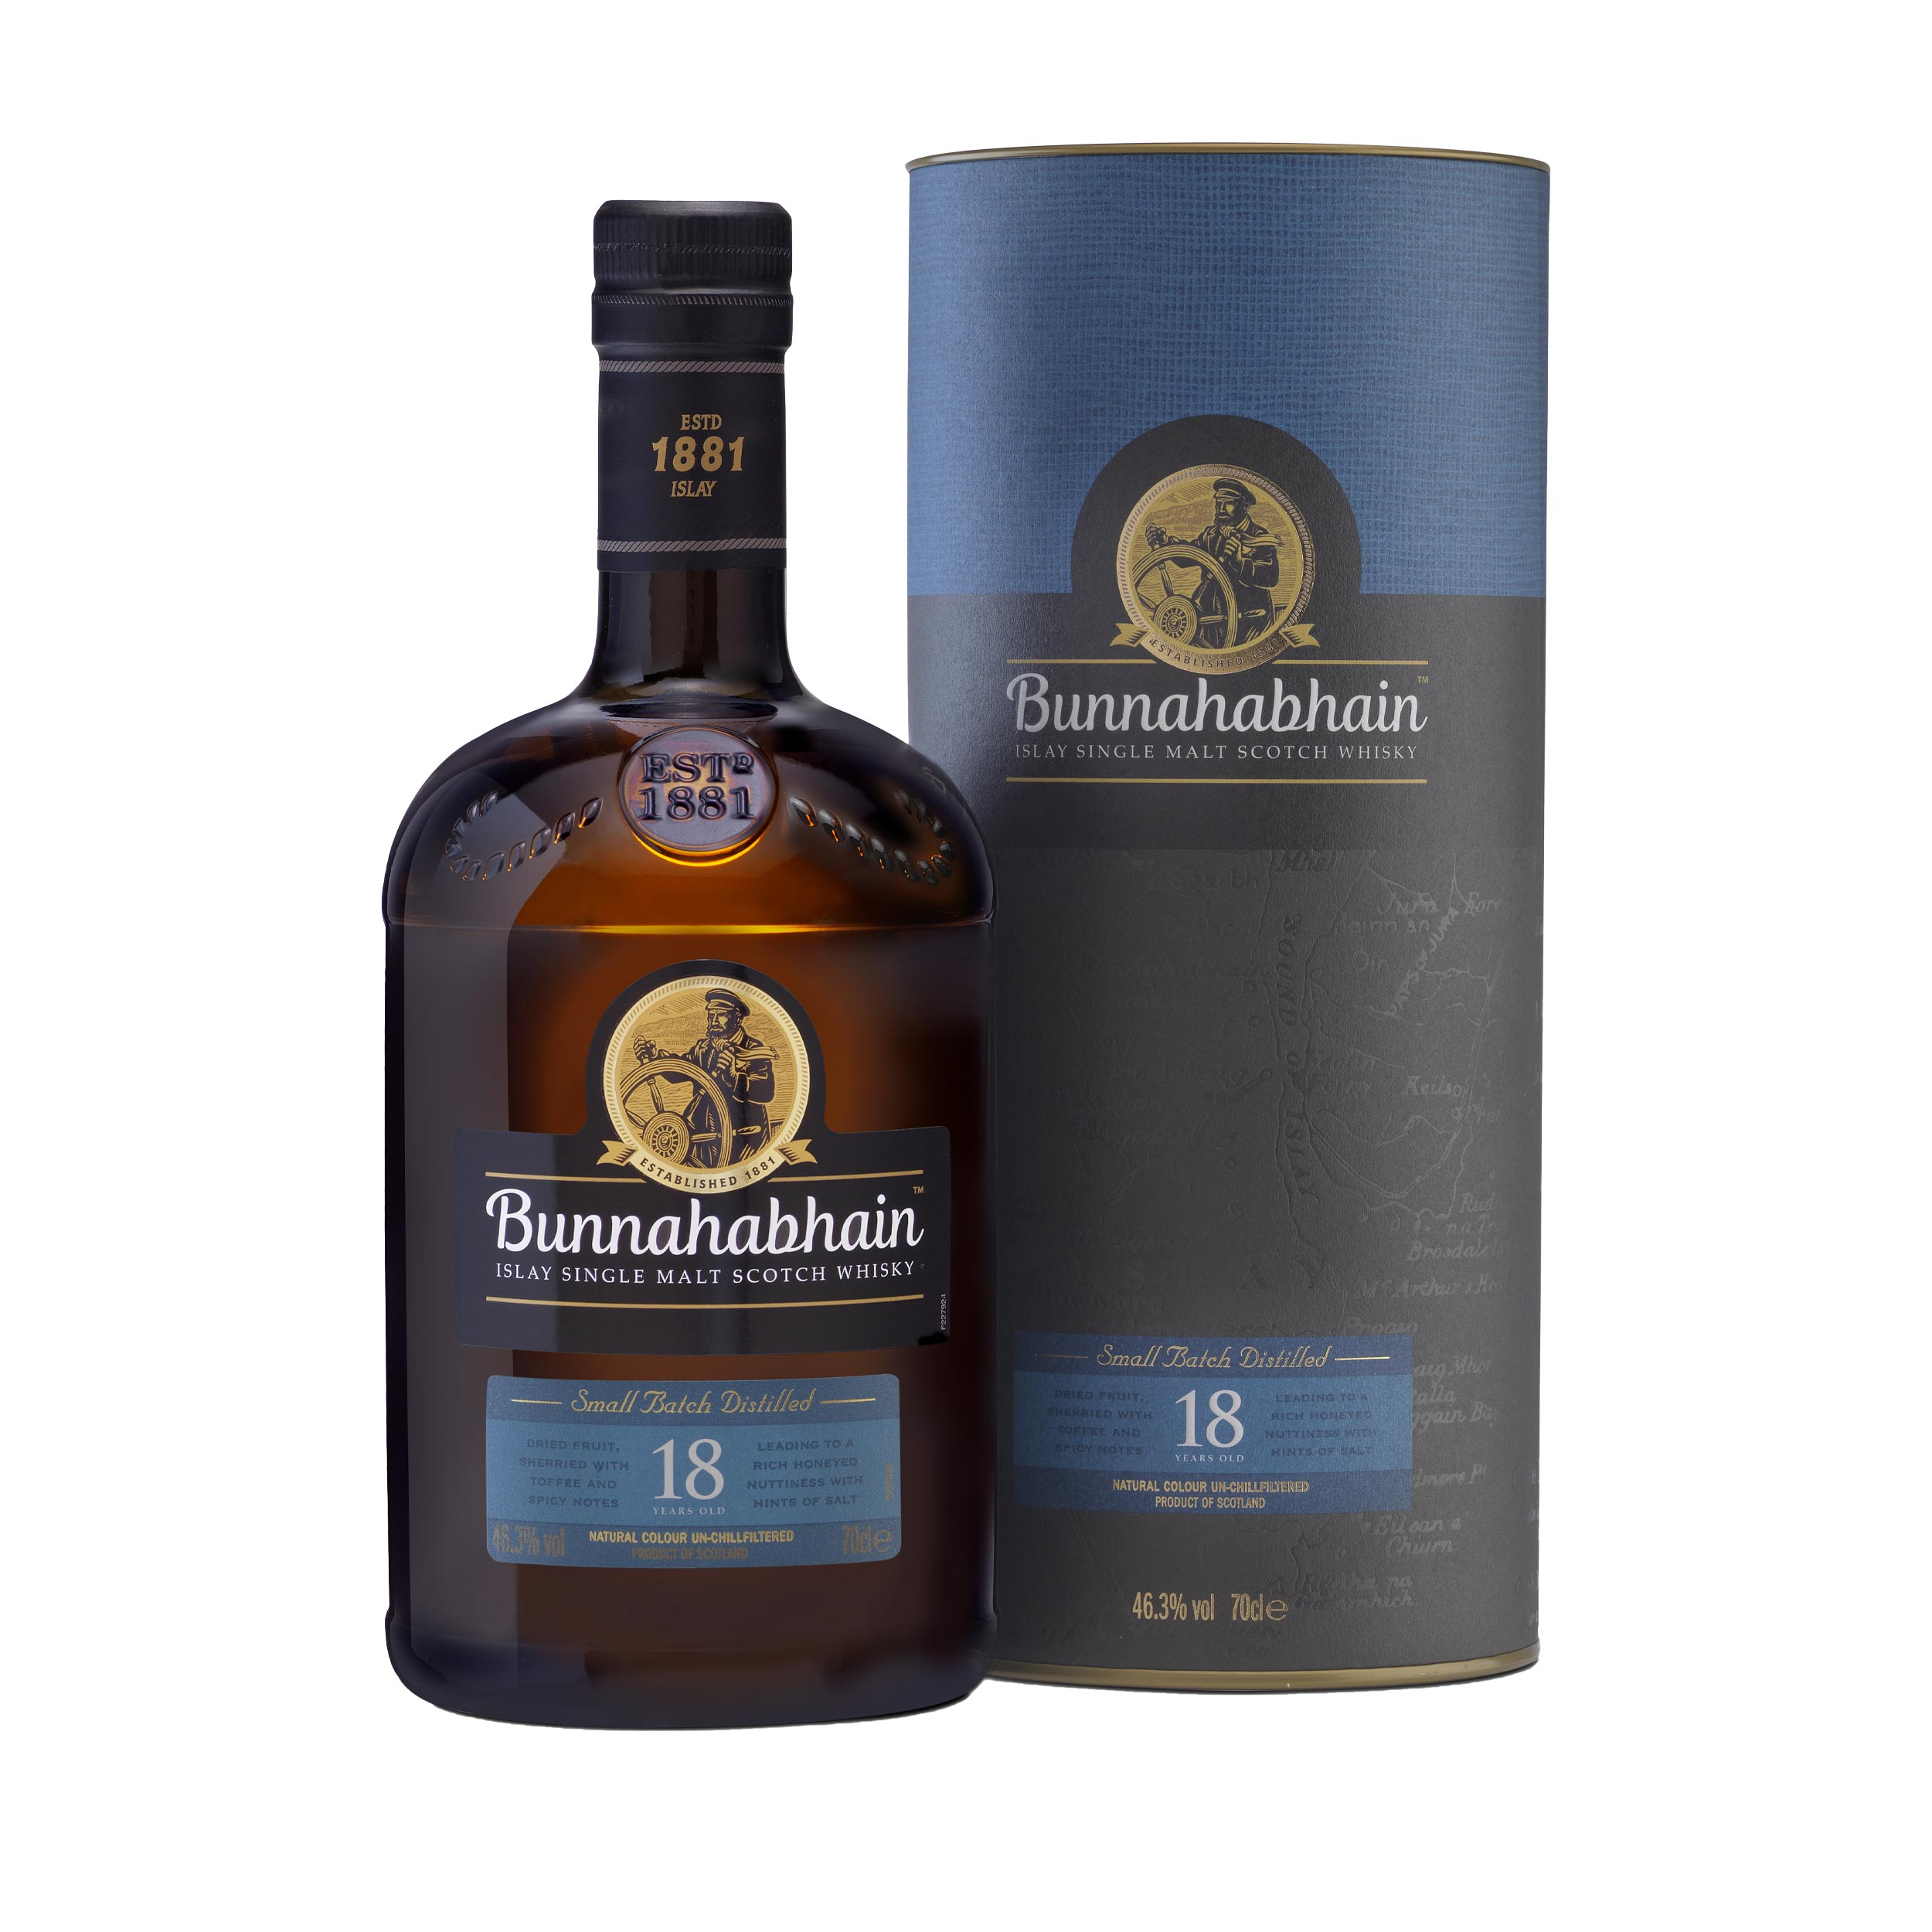 Bunnahabhain 18 Year Old Islay Single Malt Scotch Whisky 70cl